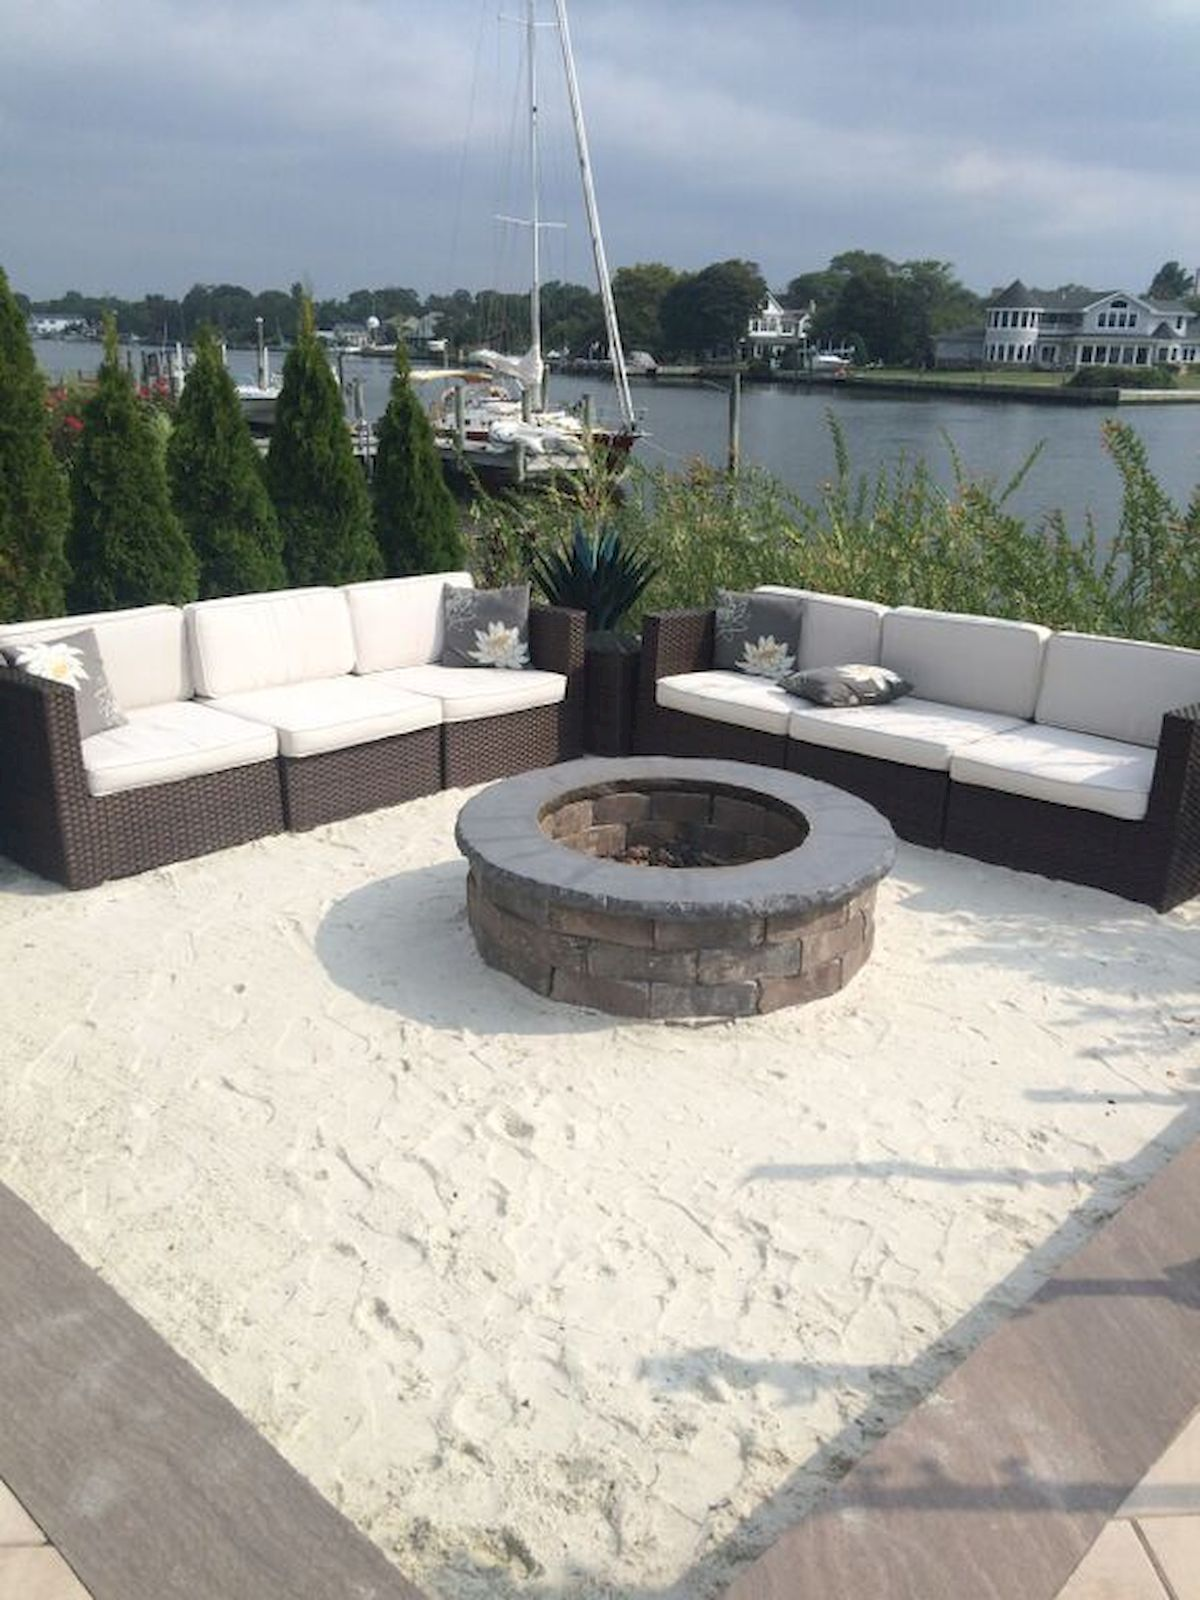 35 Great Fire Pit Designs For Your Gardens And Patios For You To Only Spend Less Cost For Your Fire Pit You May O Fire Pit Plans Backyard Fire Cool Fire Pits